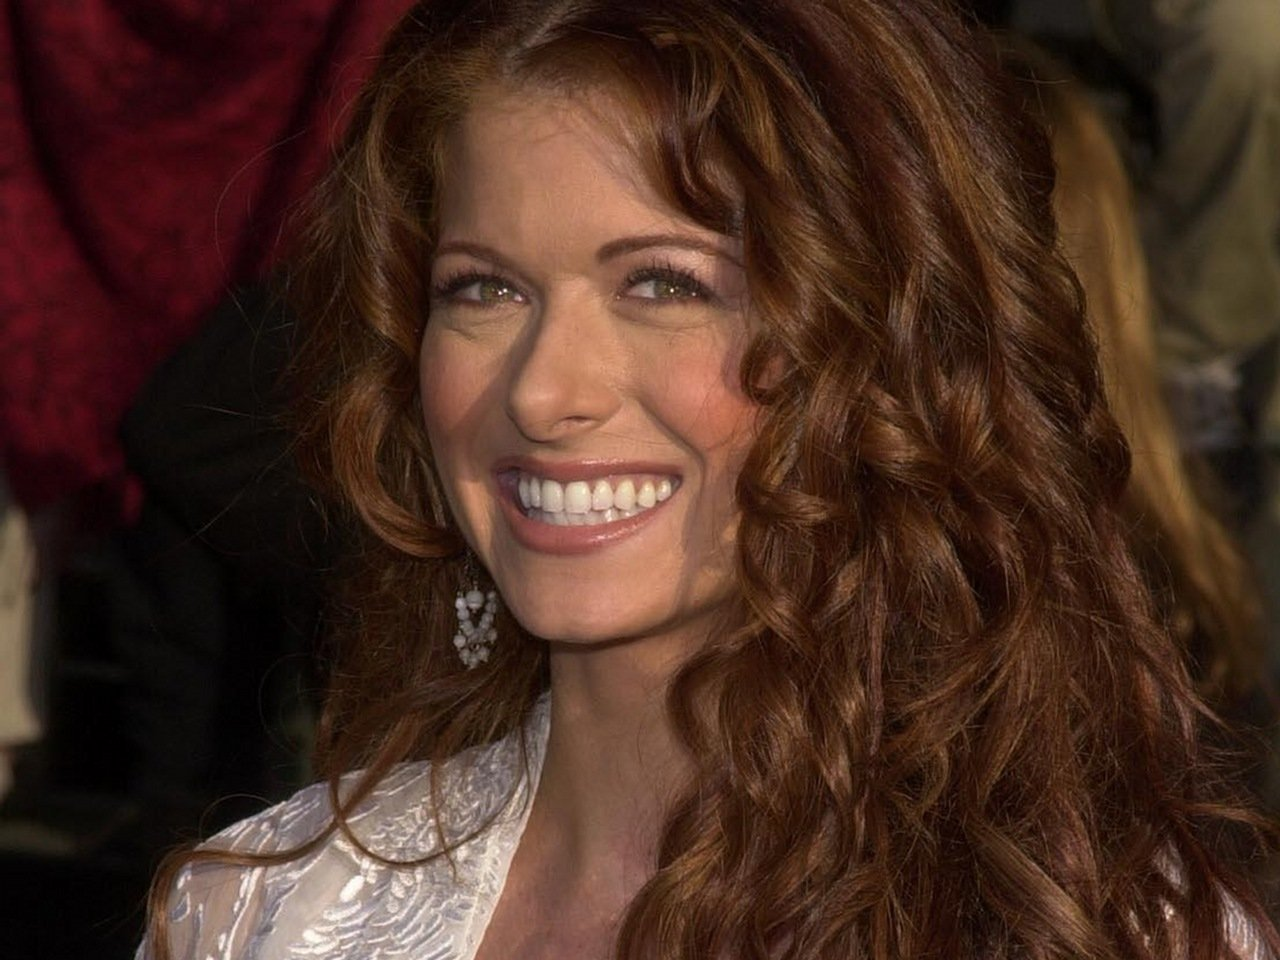 Debra Messing moves to NBC for new show